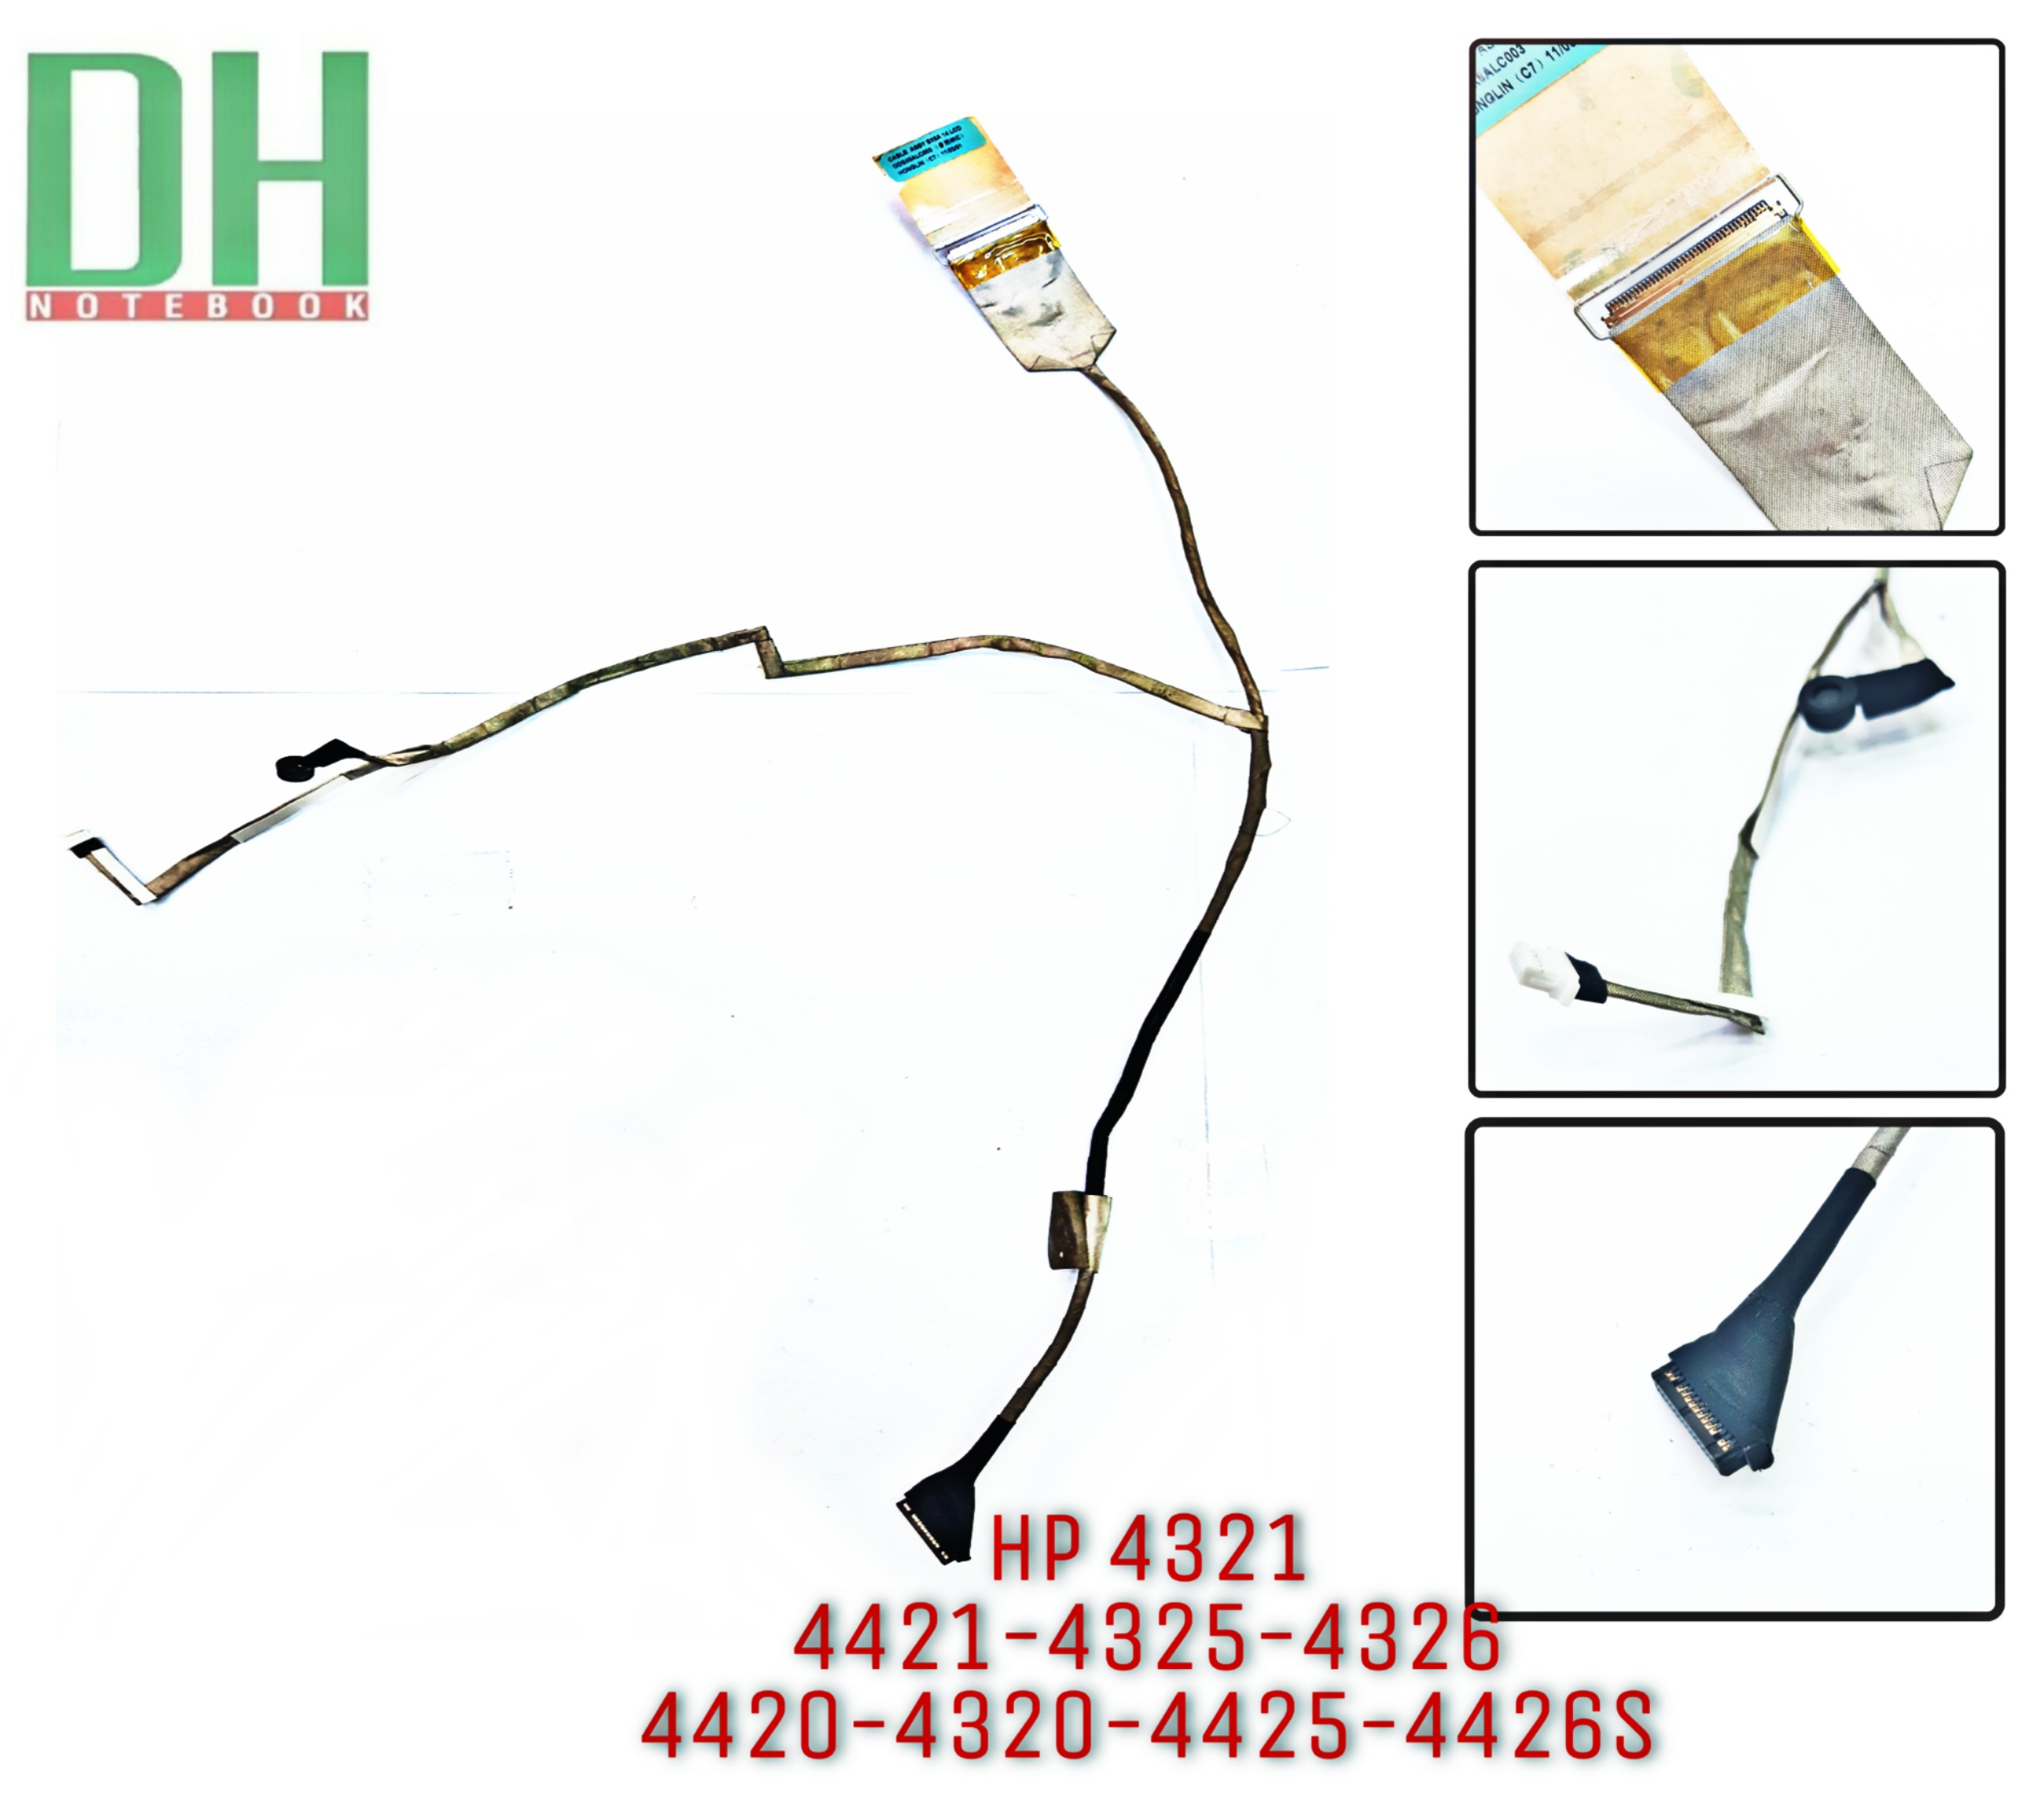 HP 4321 Video Cable